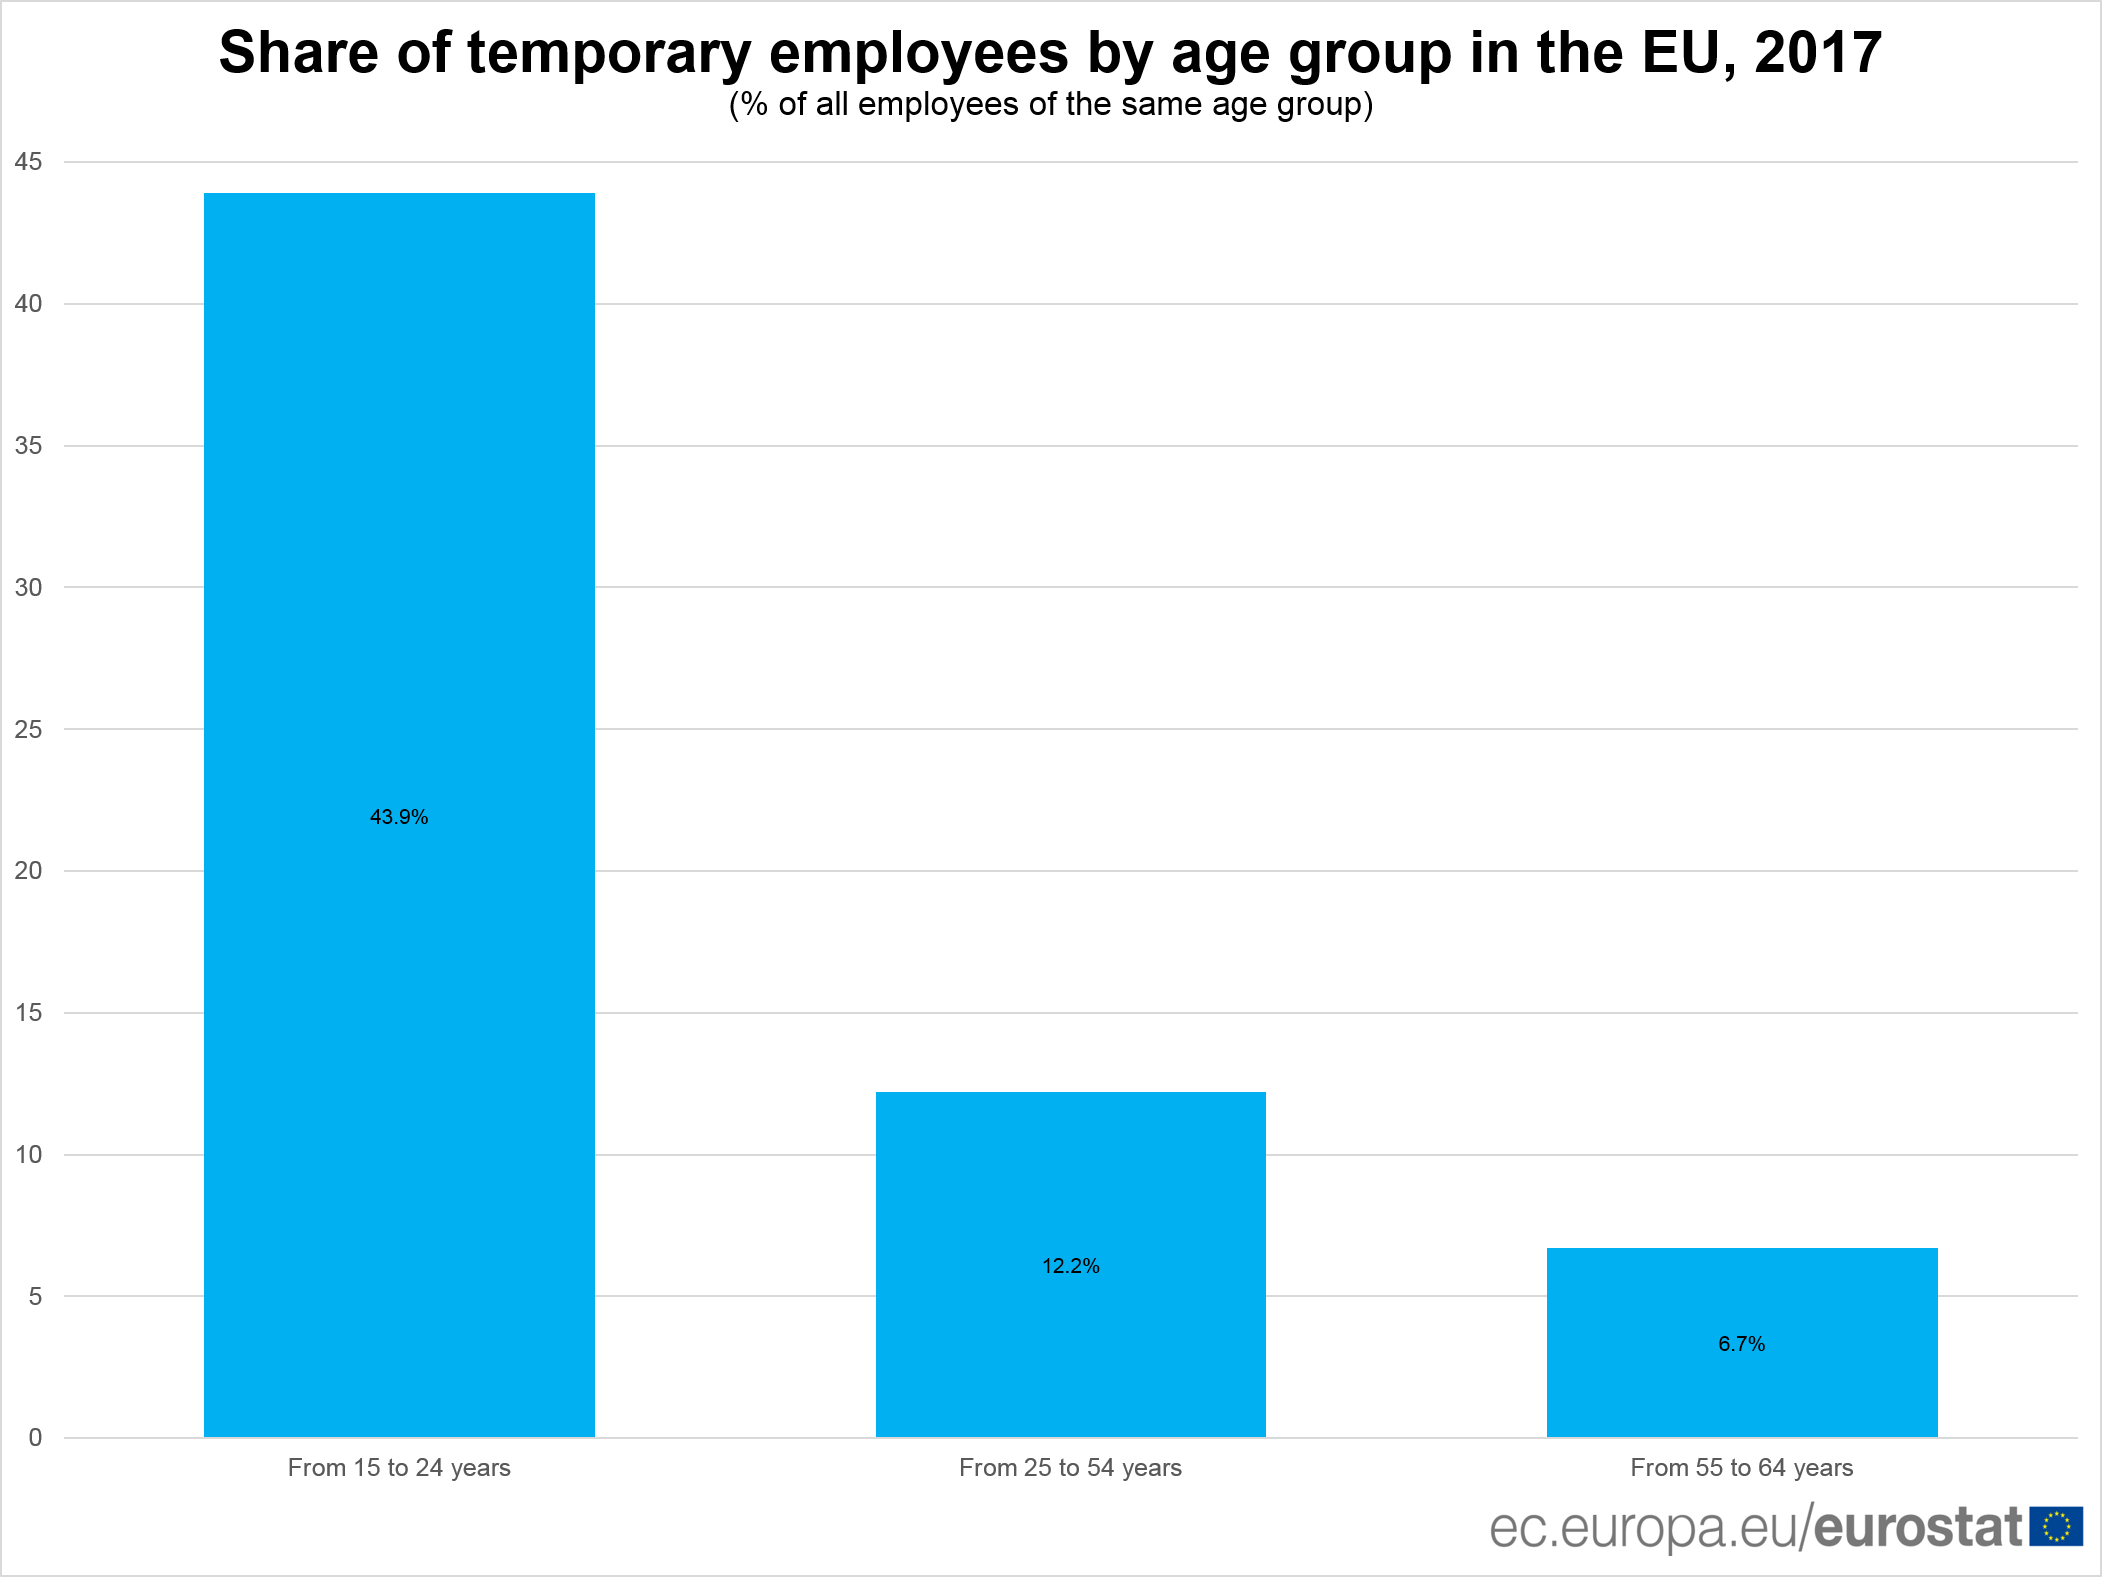 Share of temporary employees by age group in the EU